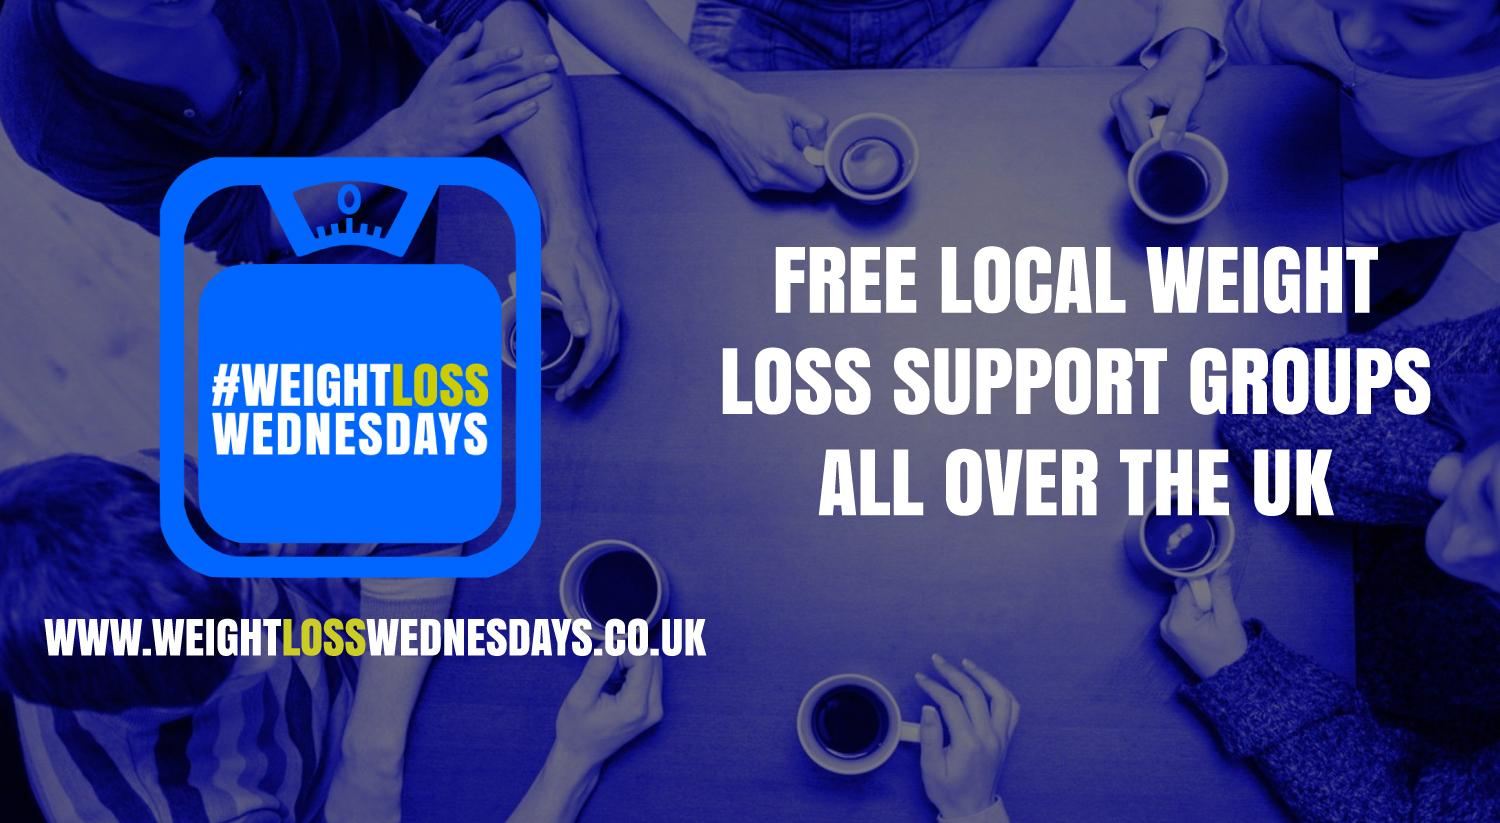 WEIGHT LOSS WEDNESDAYS! Free weekly support group in Birmingham